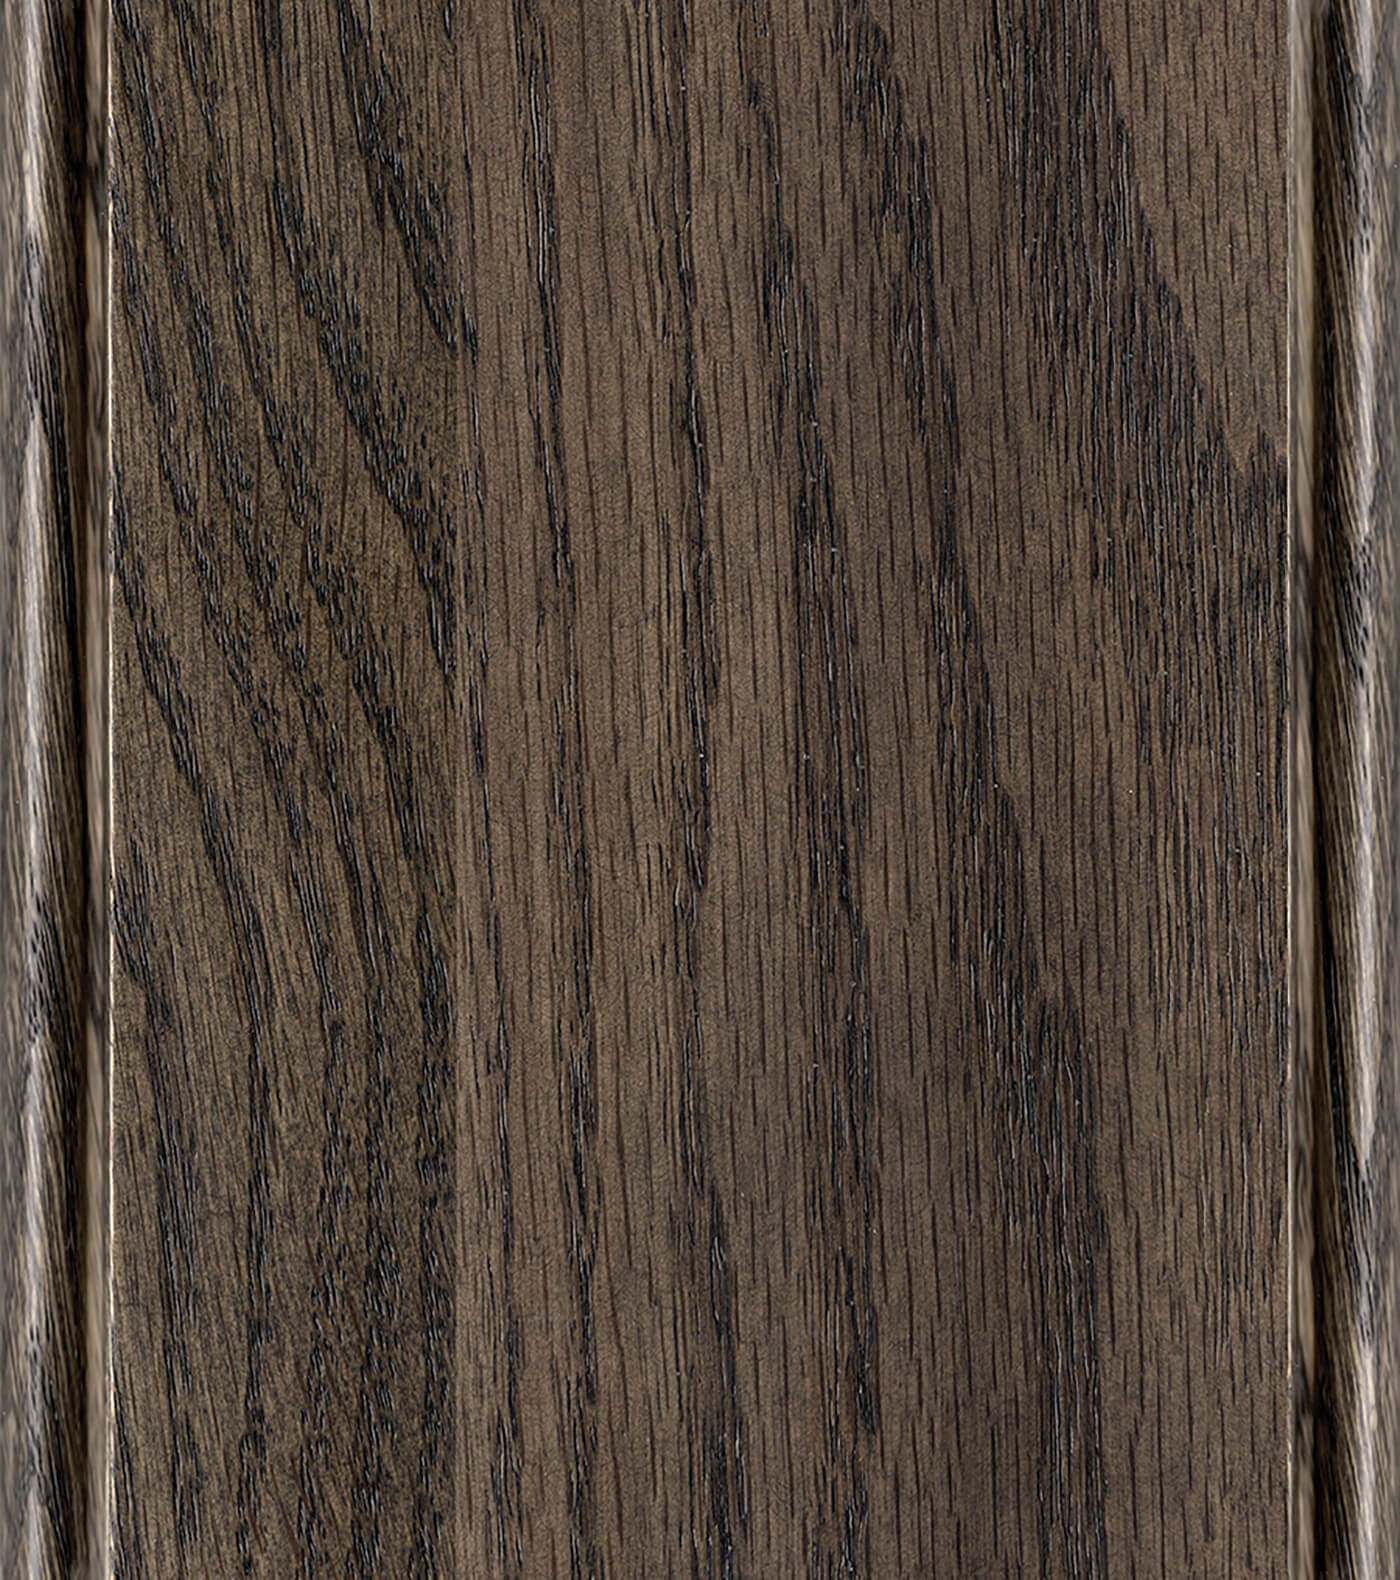 Pebble Stain on Red Oak or Quarter-Sawn Red Oak